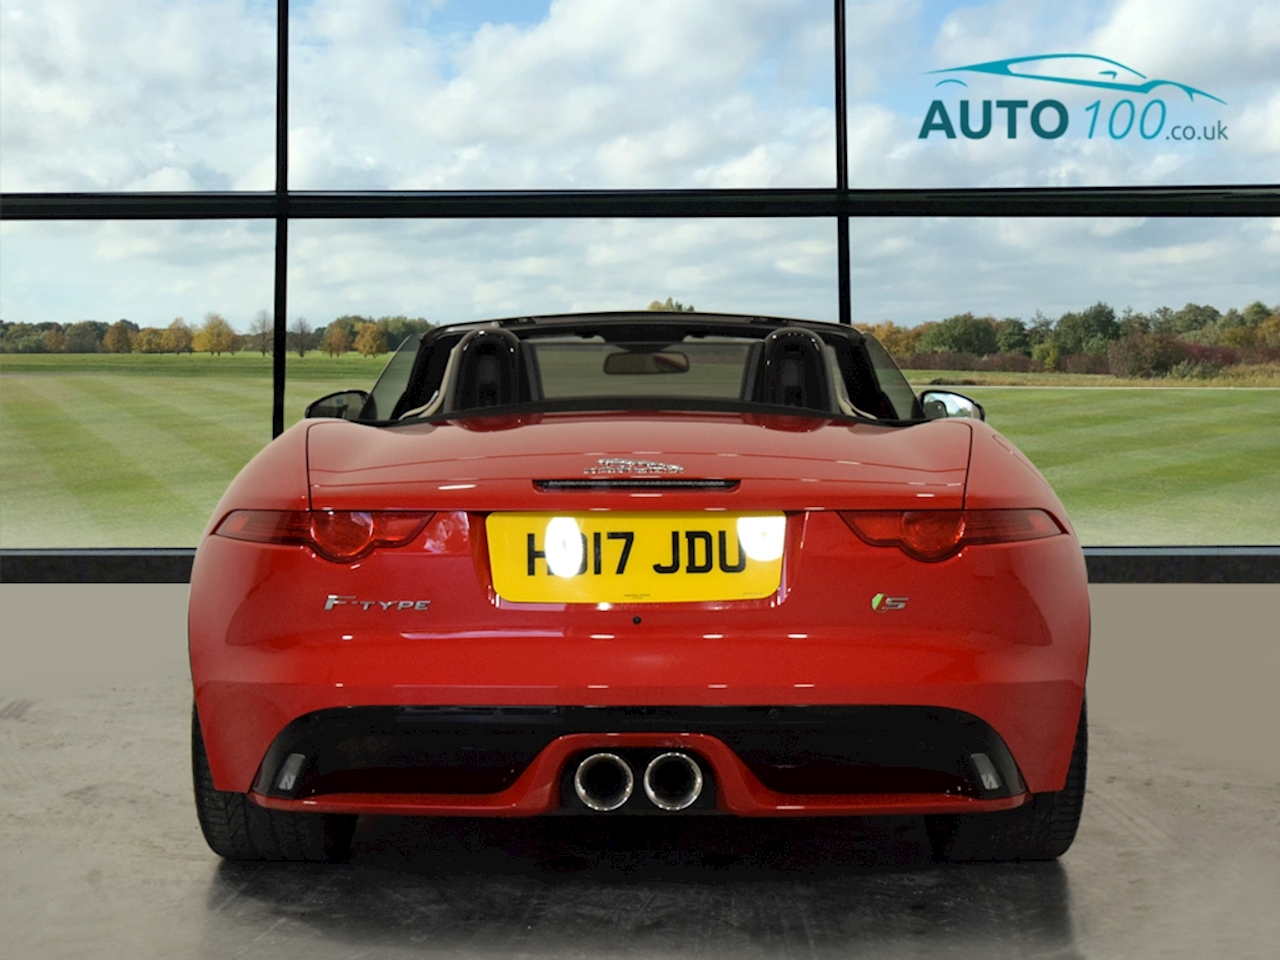 F-Type V6 S Convertible 3.0 Automatic Petrol